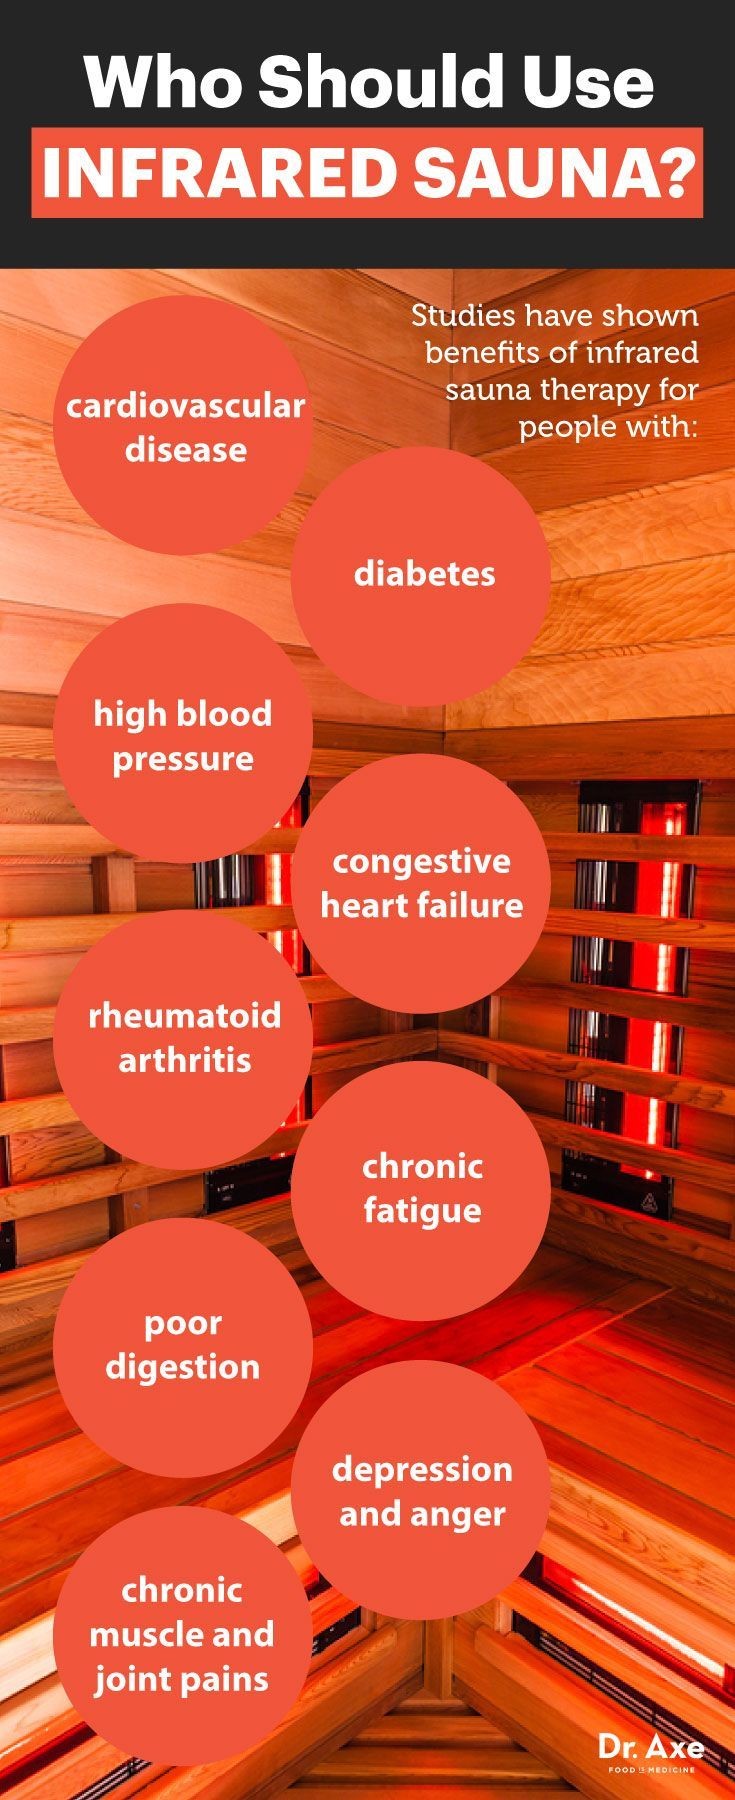 Sauna Treatment: Are the Claims Backed Up? Infrared Saunas - What They Are Who Should Use Them By: Dr. Axe | Health Infographic | Holistic | Detox | Detoxing Tips | Natural RemediesInfrared Saunas - What They Are Who Should Use Them By: Dr. Axe | Health Infographic | Holistic | Detox | Detoxing Tips | Natural Remedies